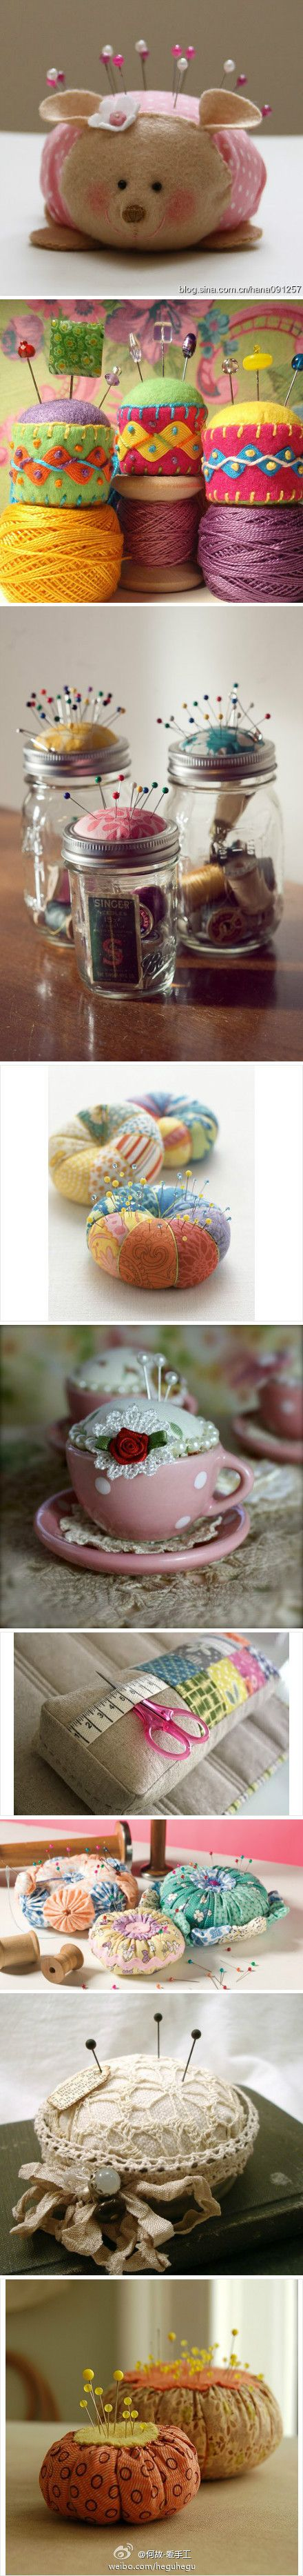 Adorably cute pin cushions